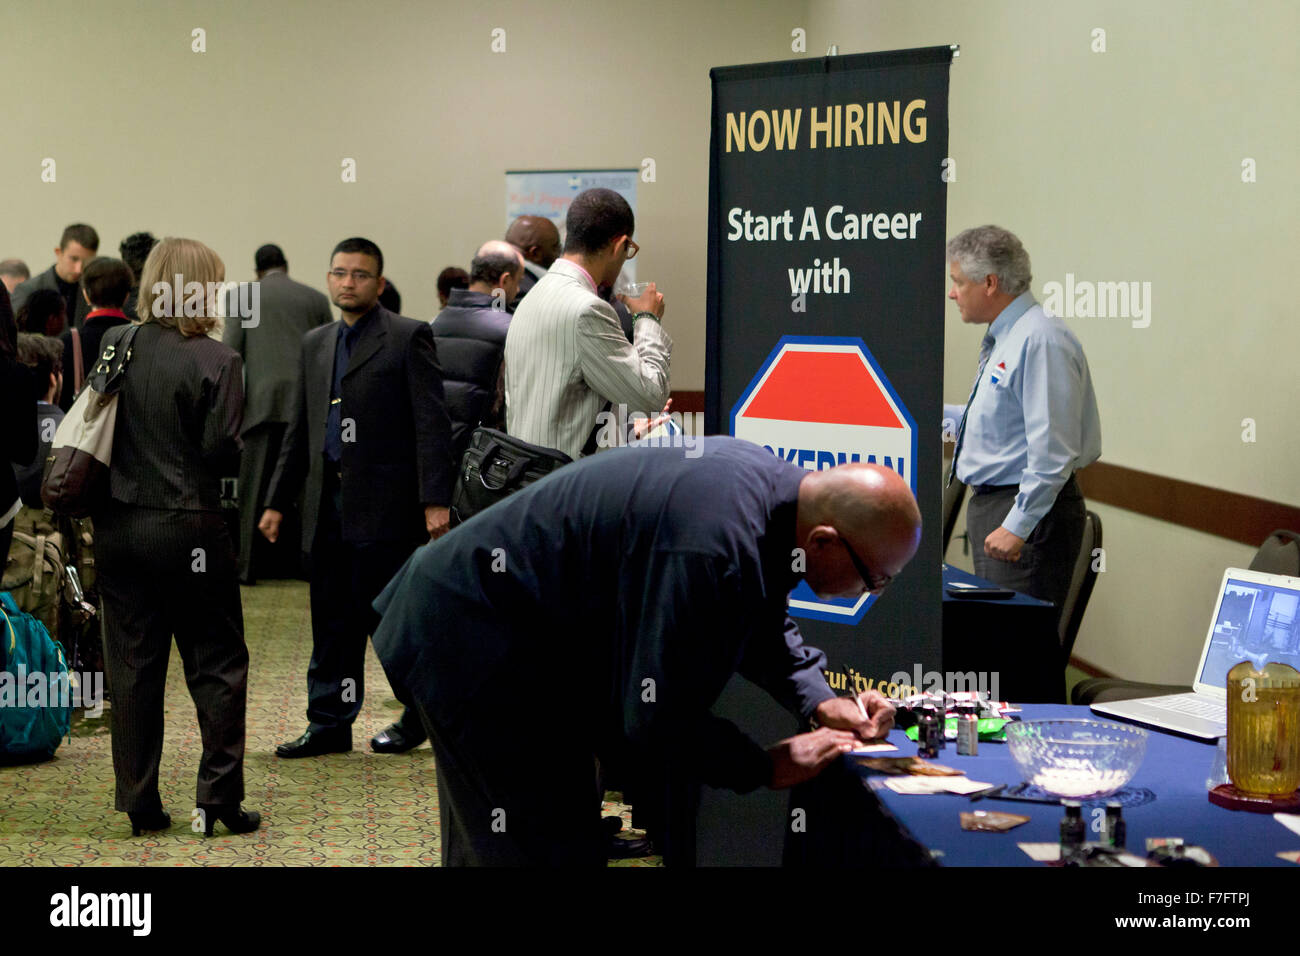 Job seekers at hiring fair - USA - Stock Image